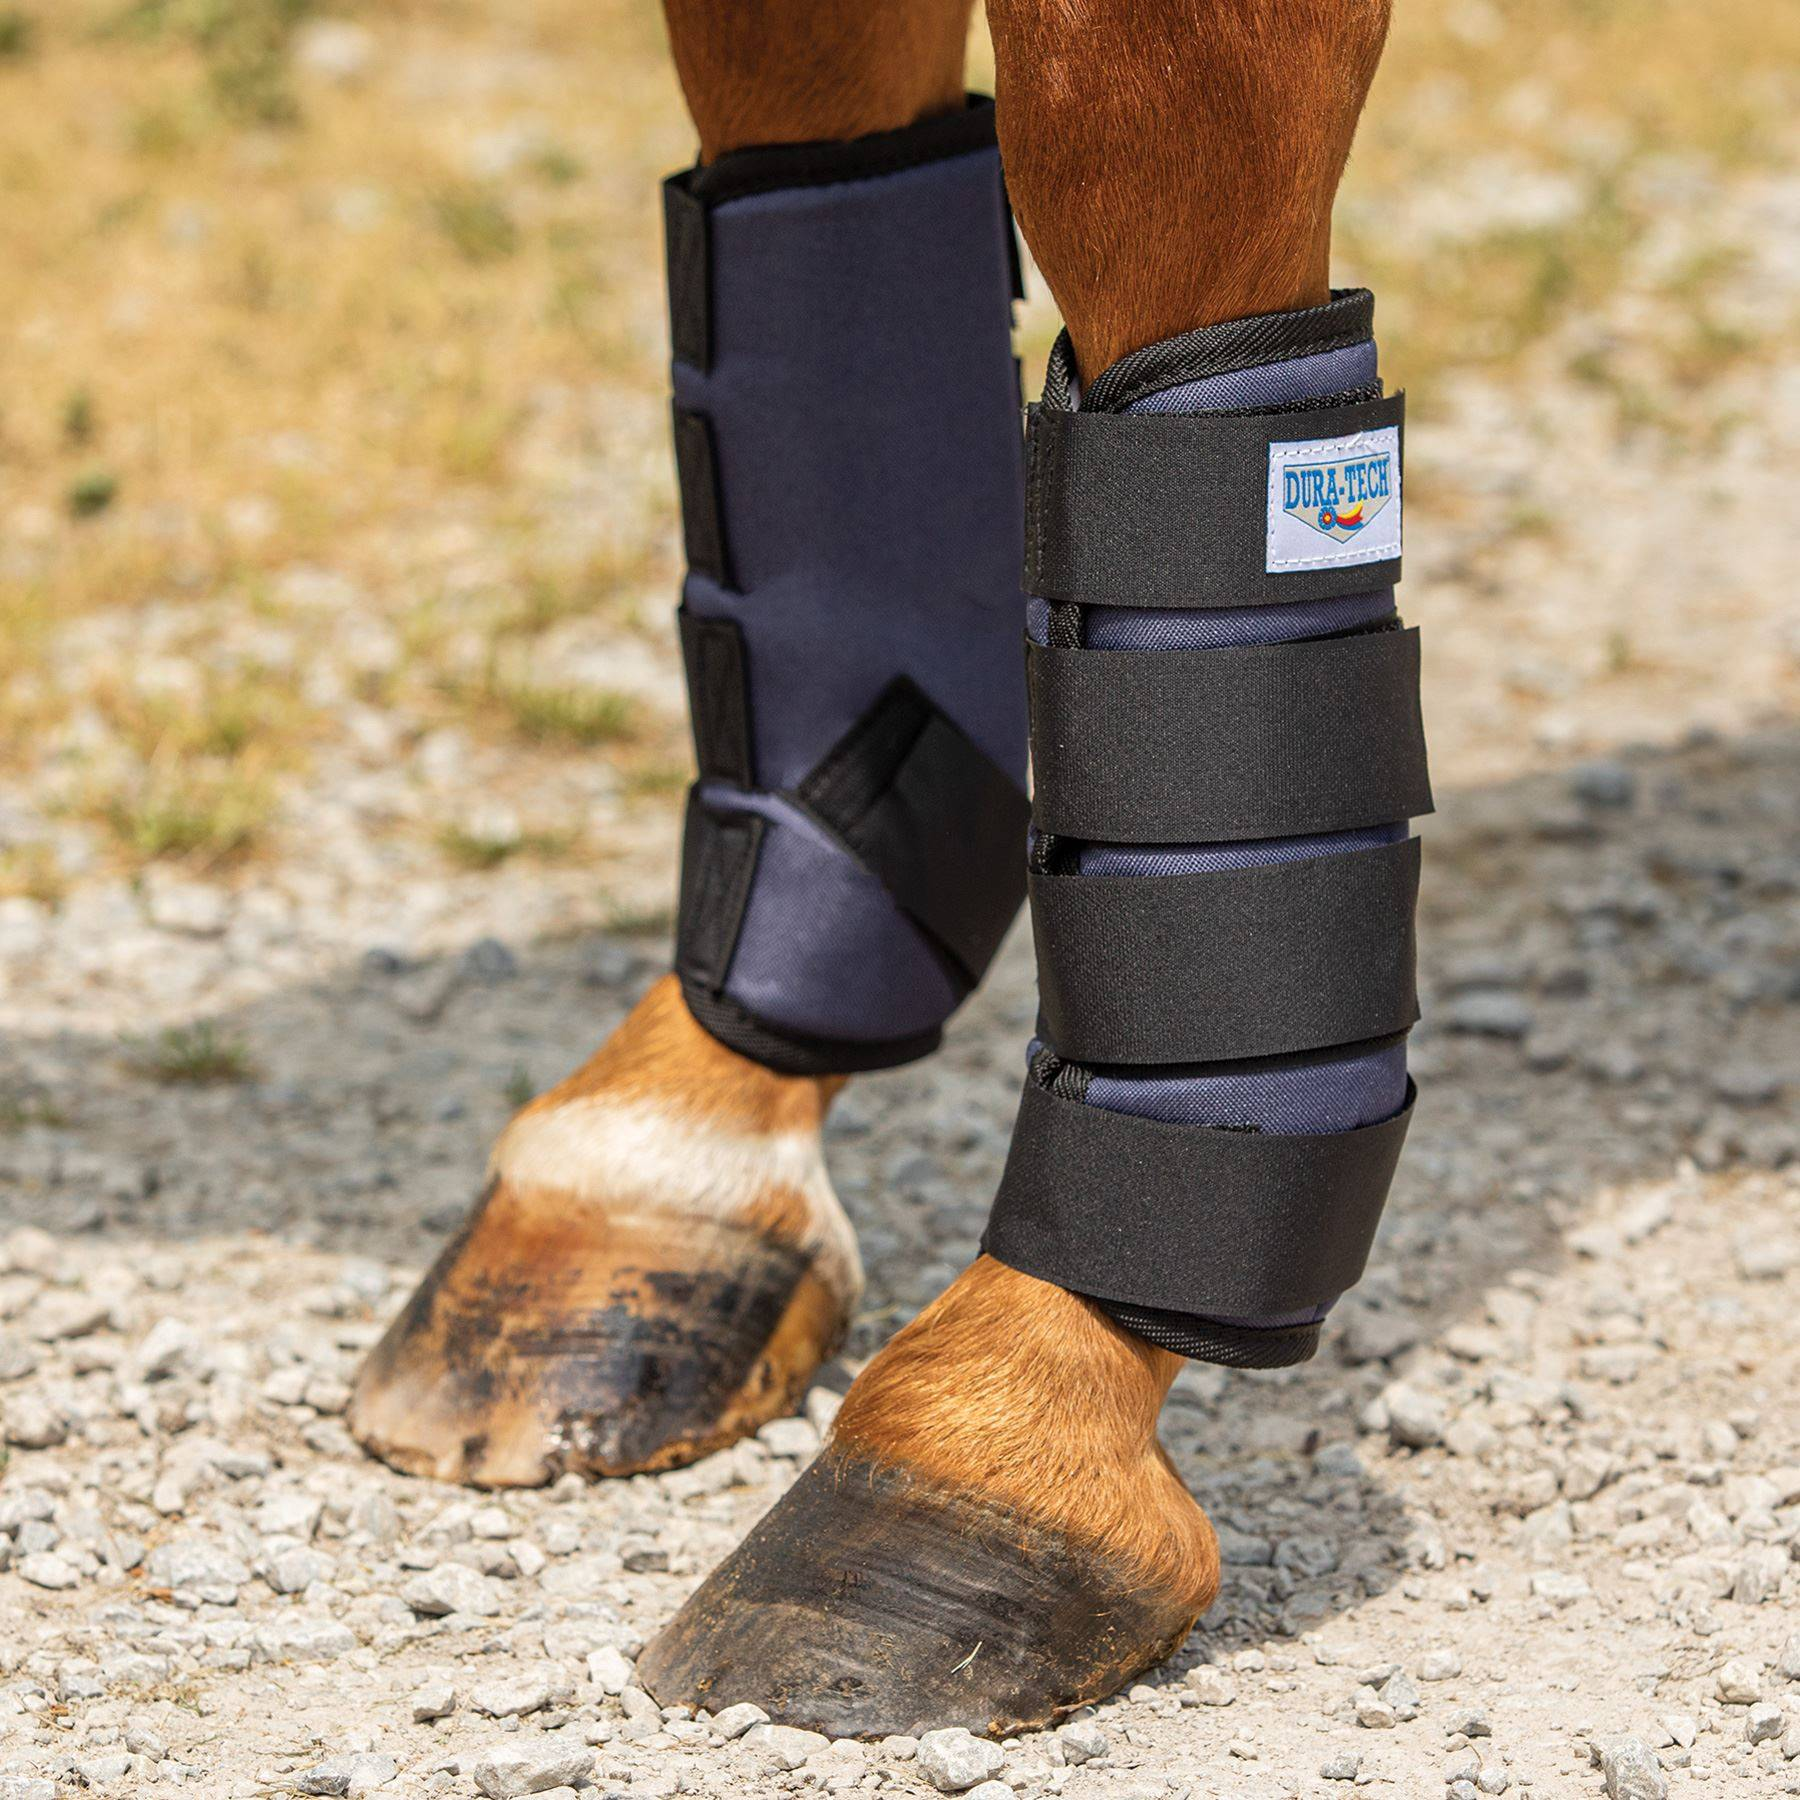 Dura Tech 174 Magnetic Shin Amp Tendon Wraps 6 Magnets In